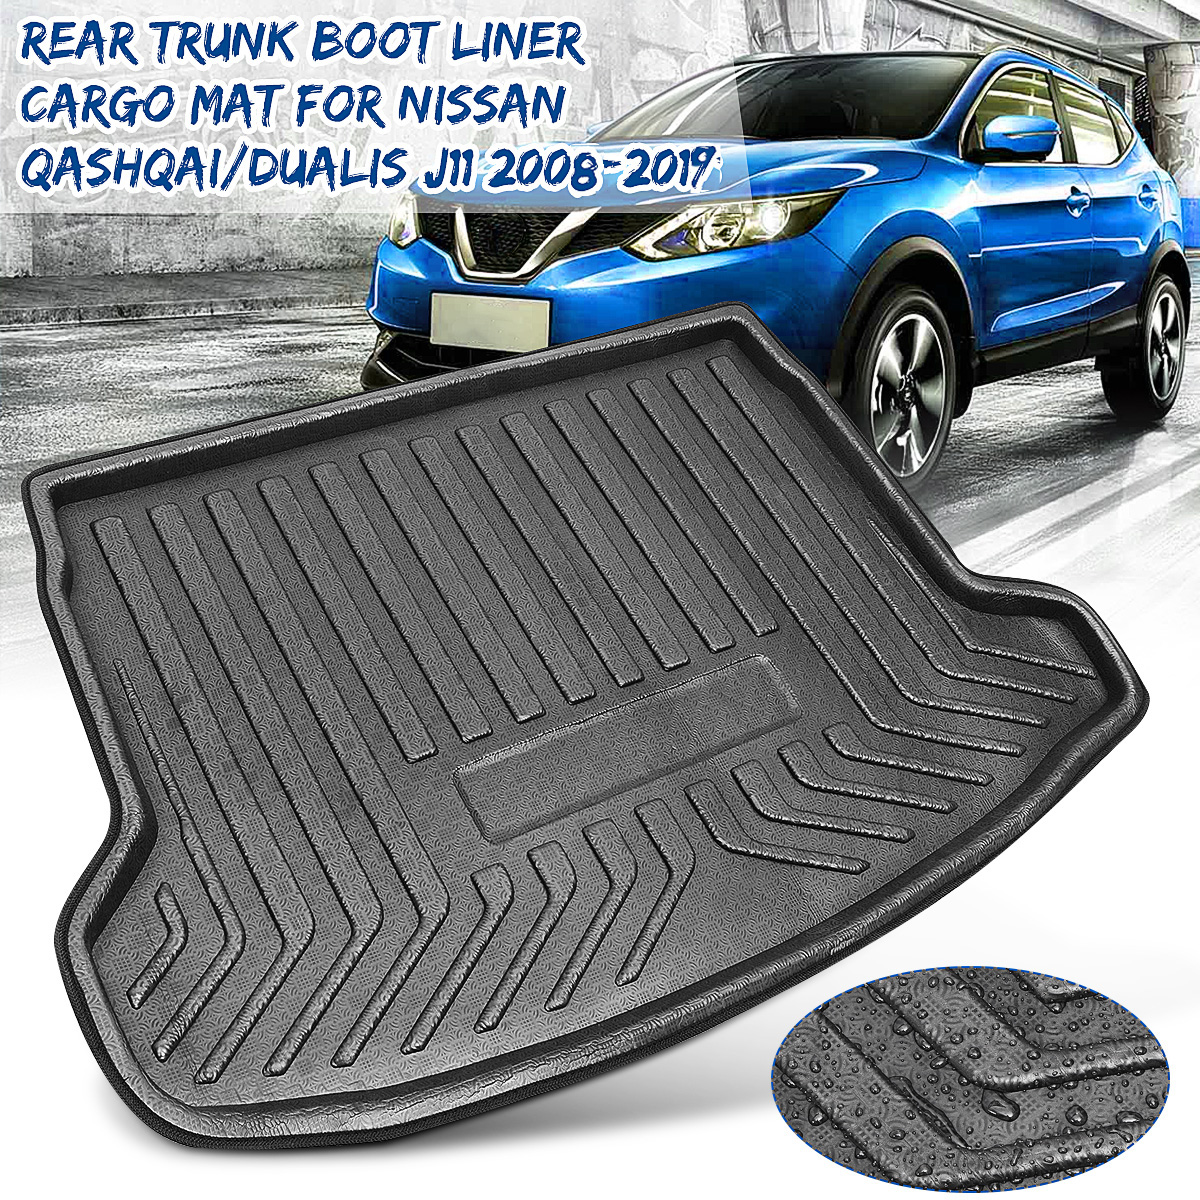 Rear Cargo Boot Liner Trunk Floor Mat Tray Carpet Mats Mud Kick For Nissan Qashqai / For Dualis J11 2008 2009 2010 2011-2019